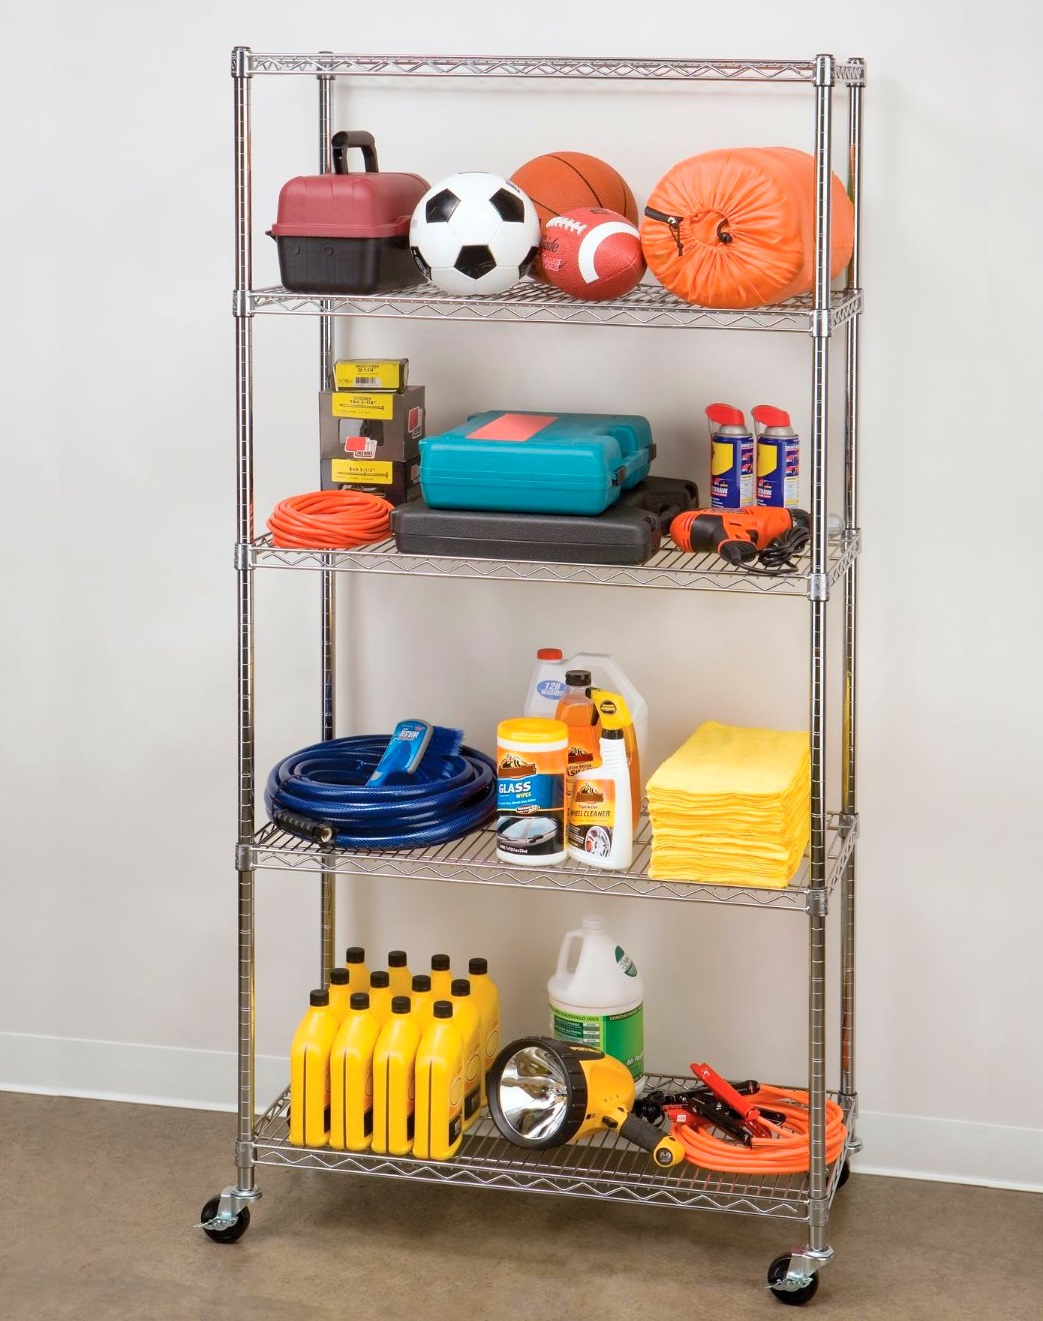 organization hack for garage